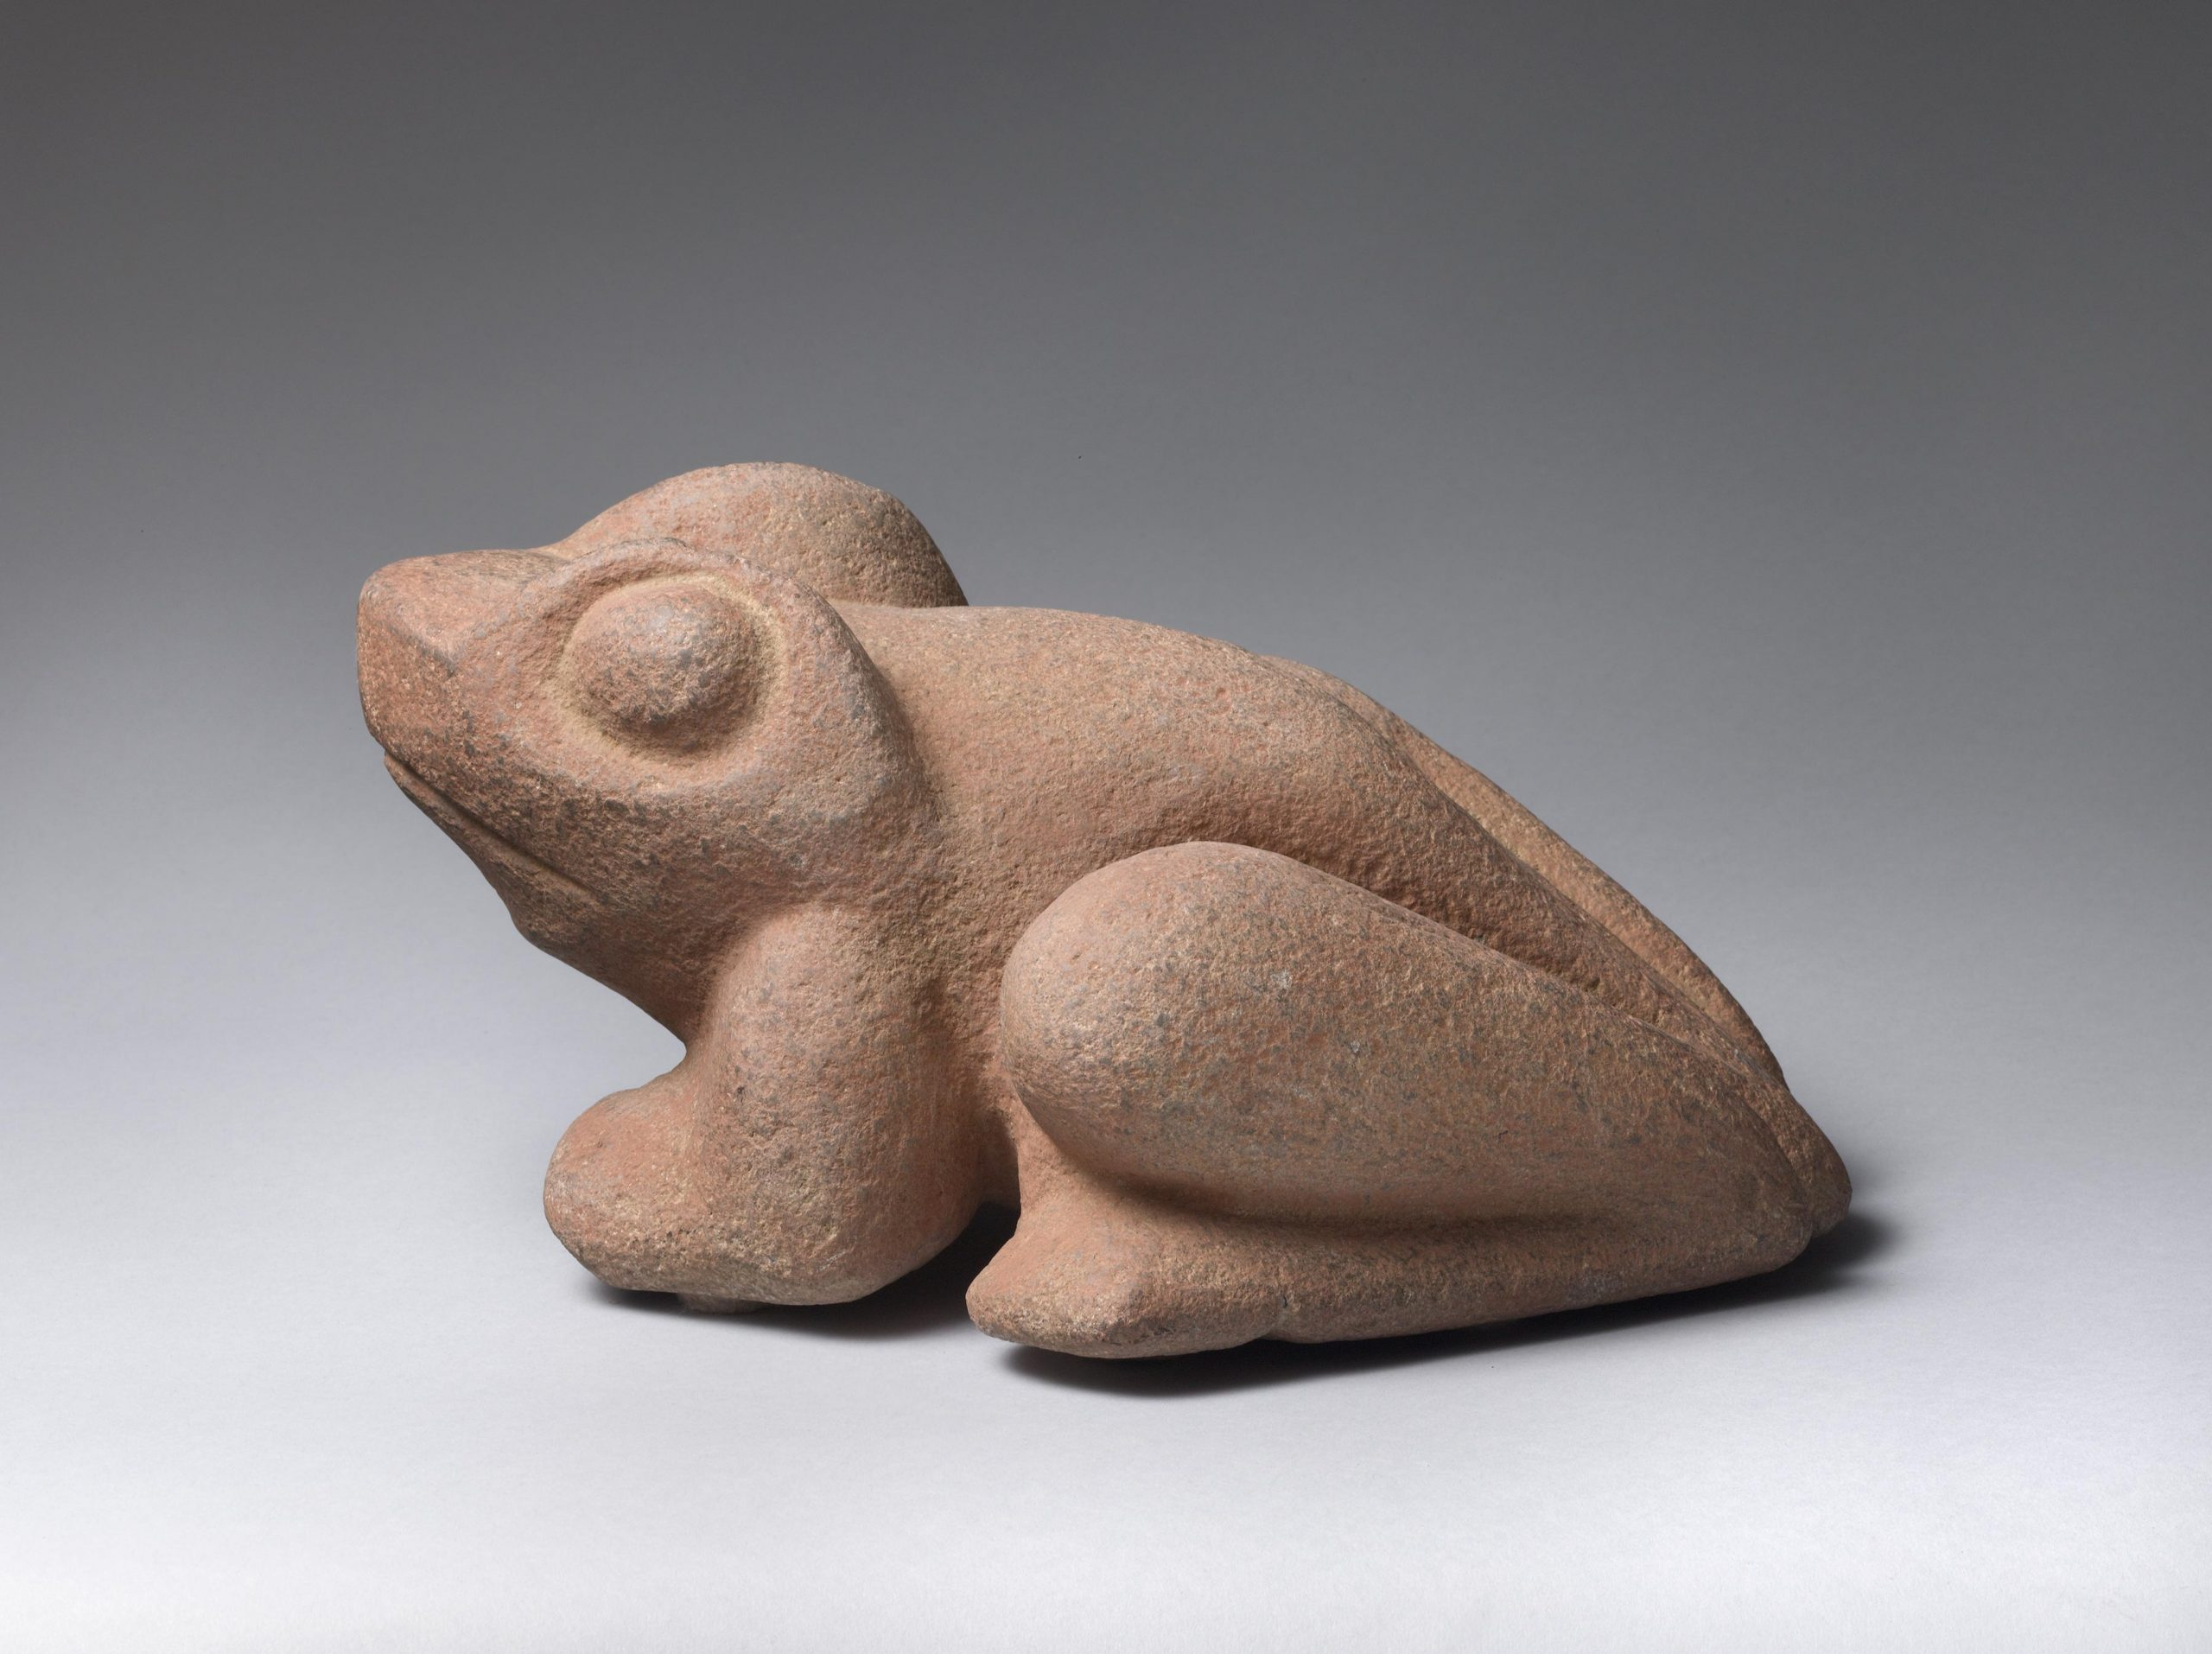 Stone sculpture of a perched frog.